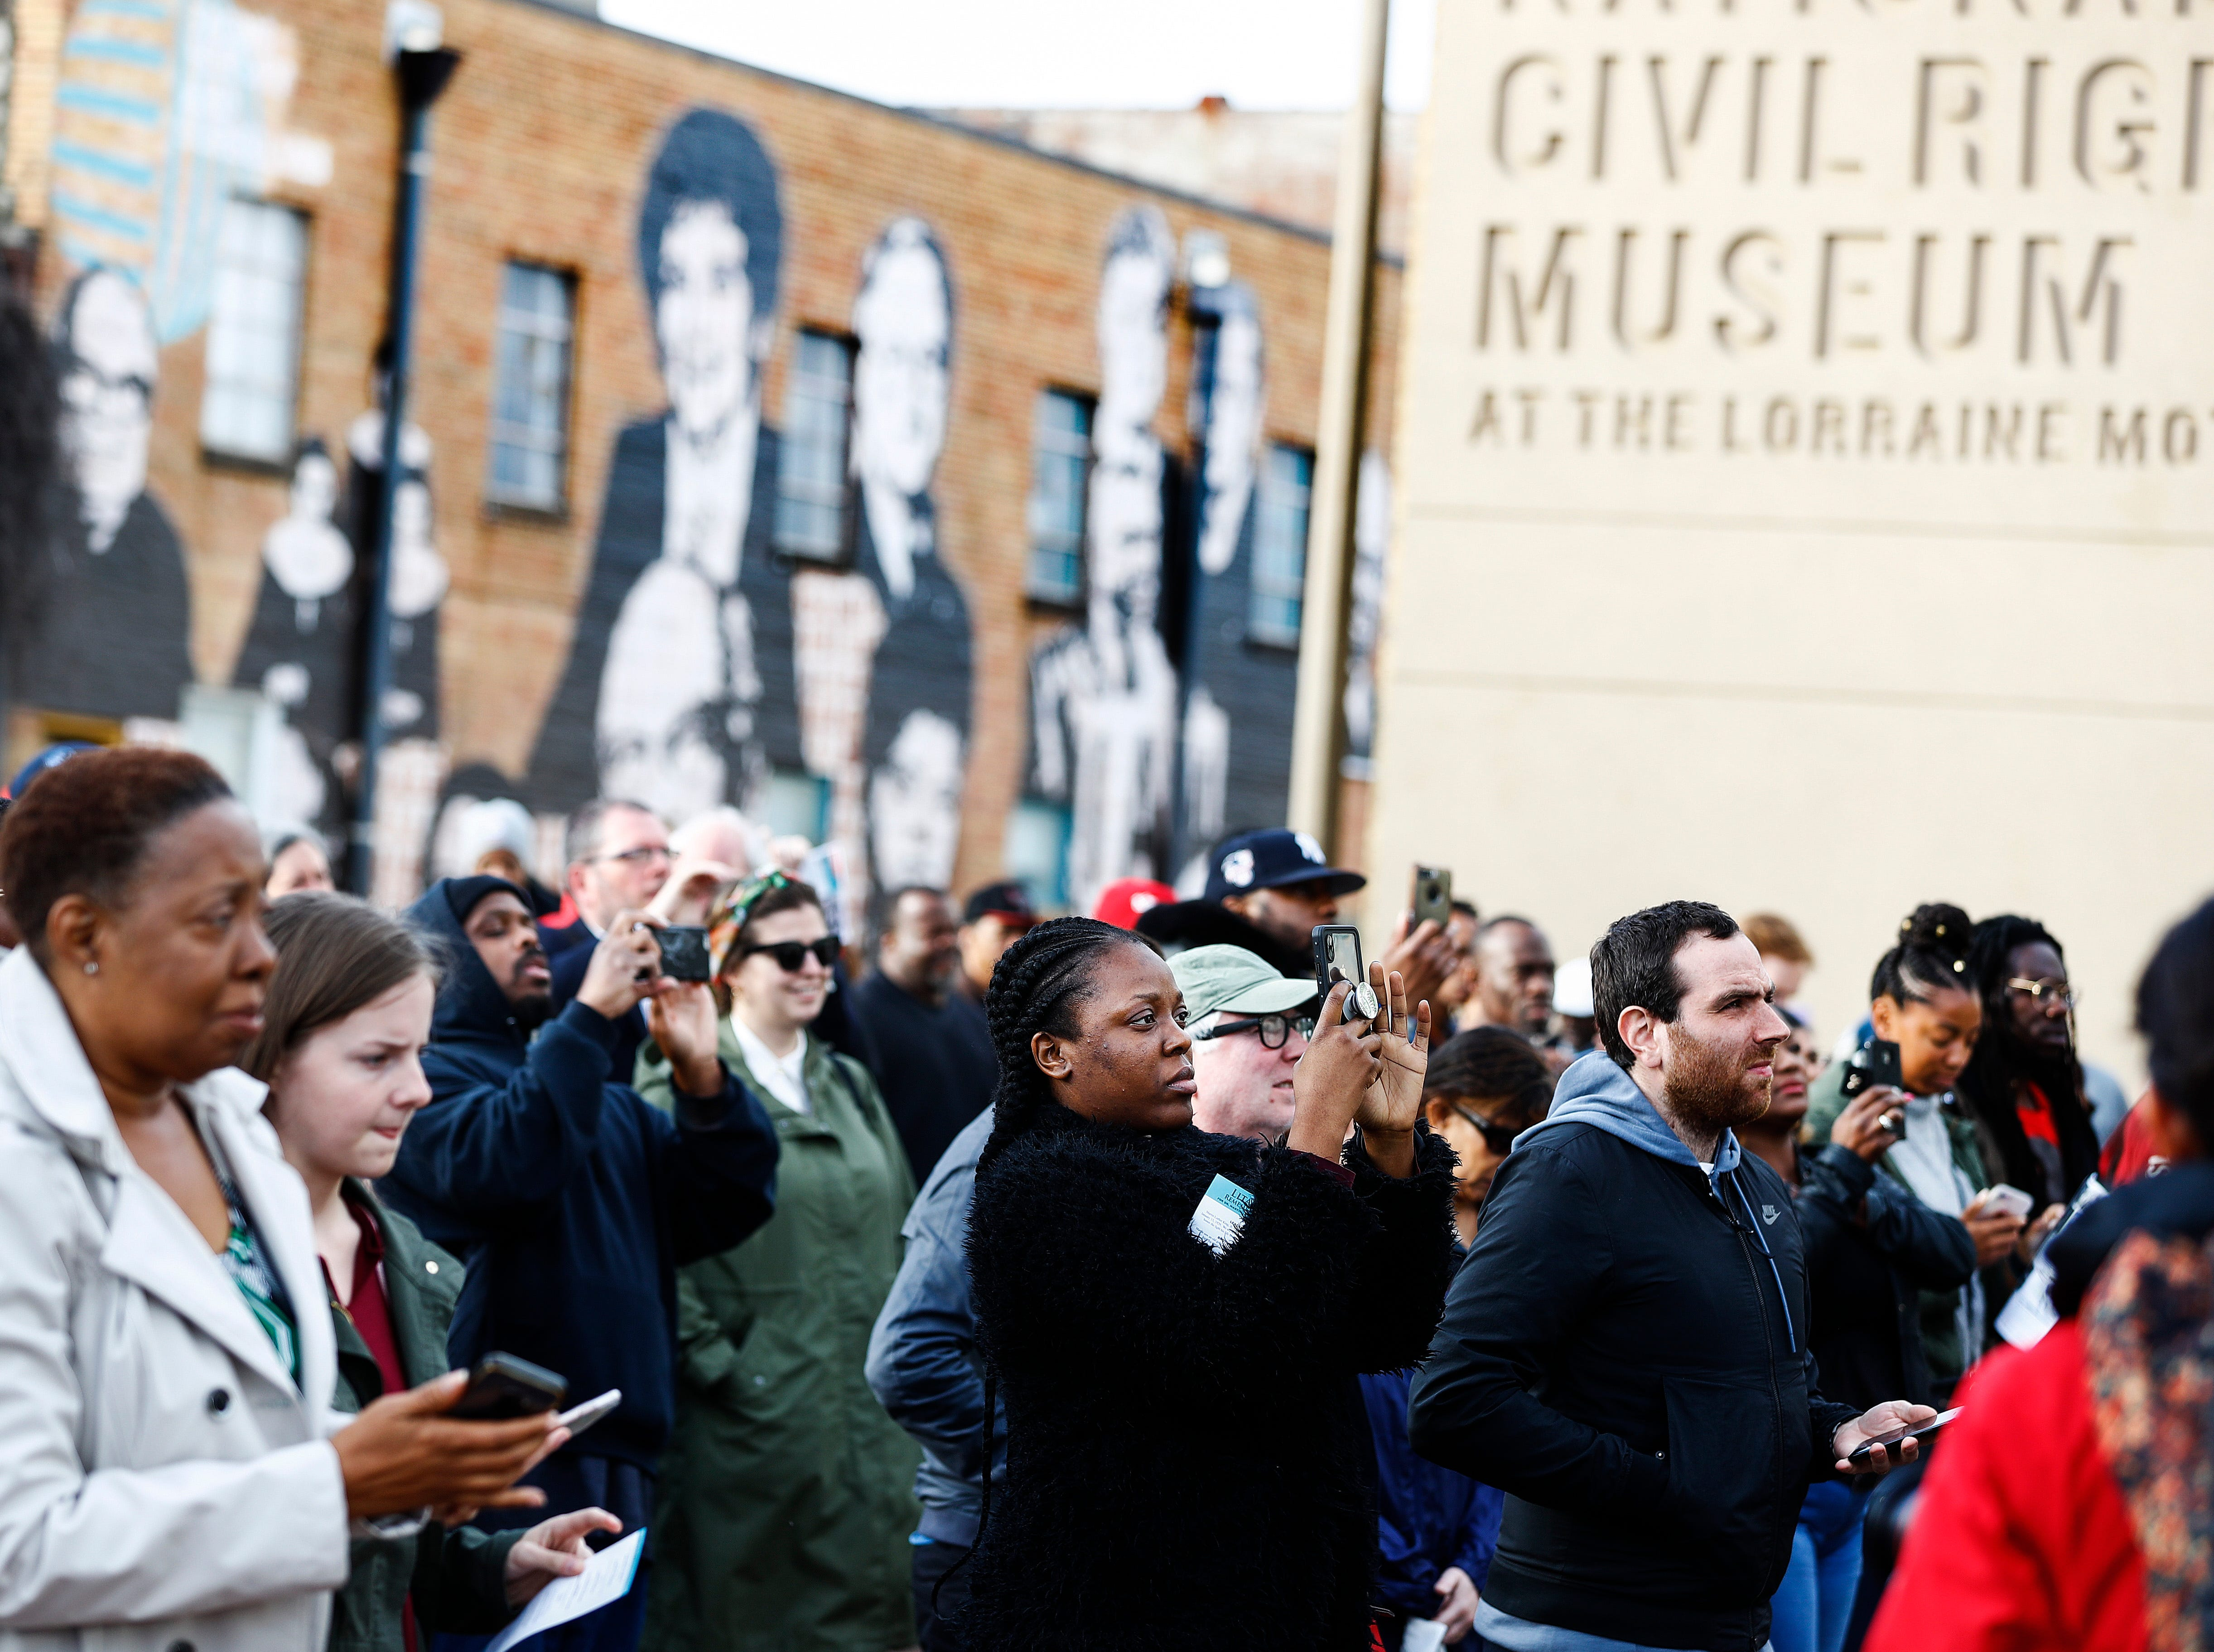 A crowd gathers as a wreath is placed in front of Room 306 at the National Civil Rights Museum April 4, 2019, during a commemoration ceremony on the 51st anniversary of Dr. Martin Luther King, Jr.'s assassination.